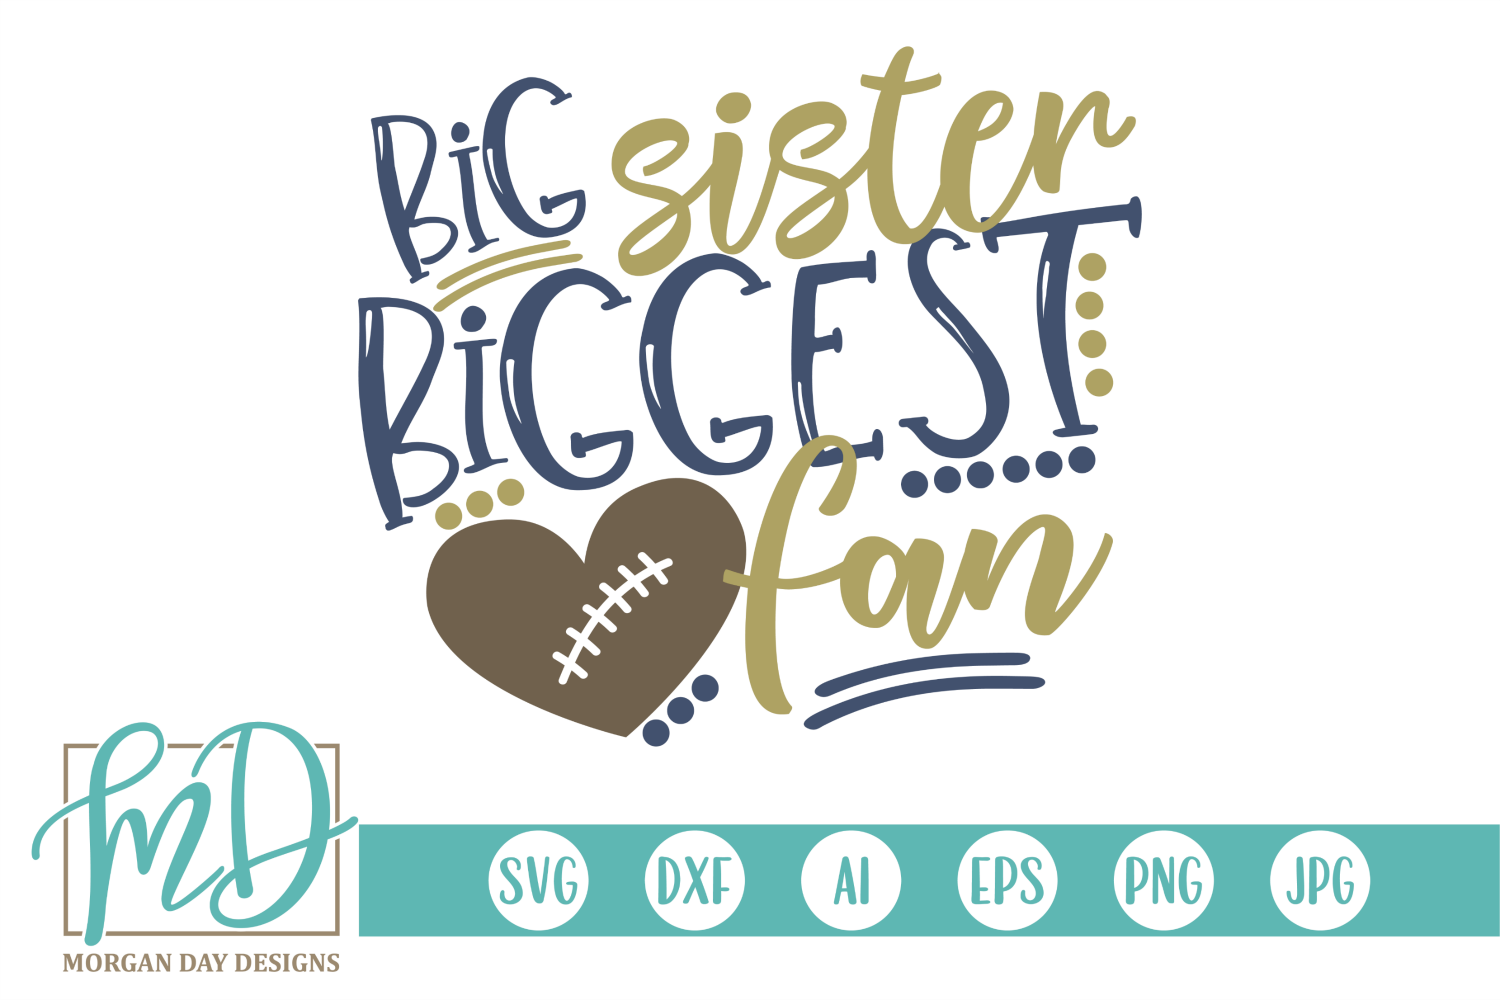 Football Sister - Big Sister Biggest Fan SVG example image 1